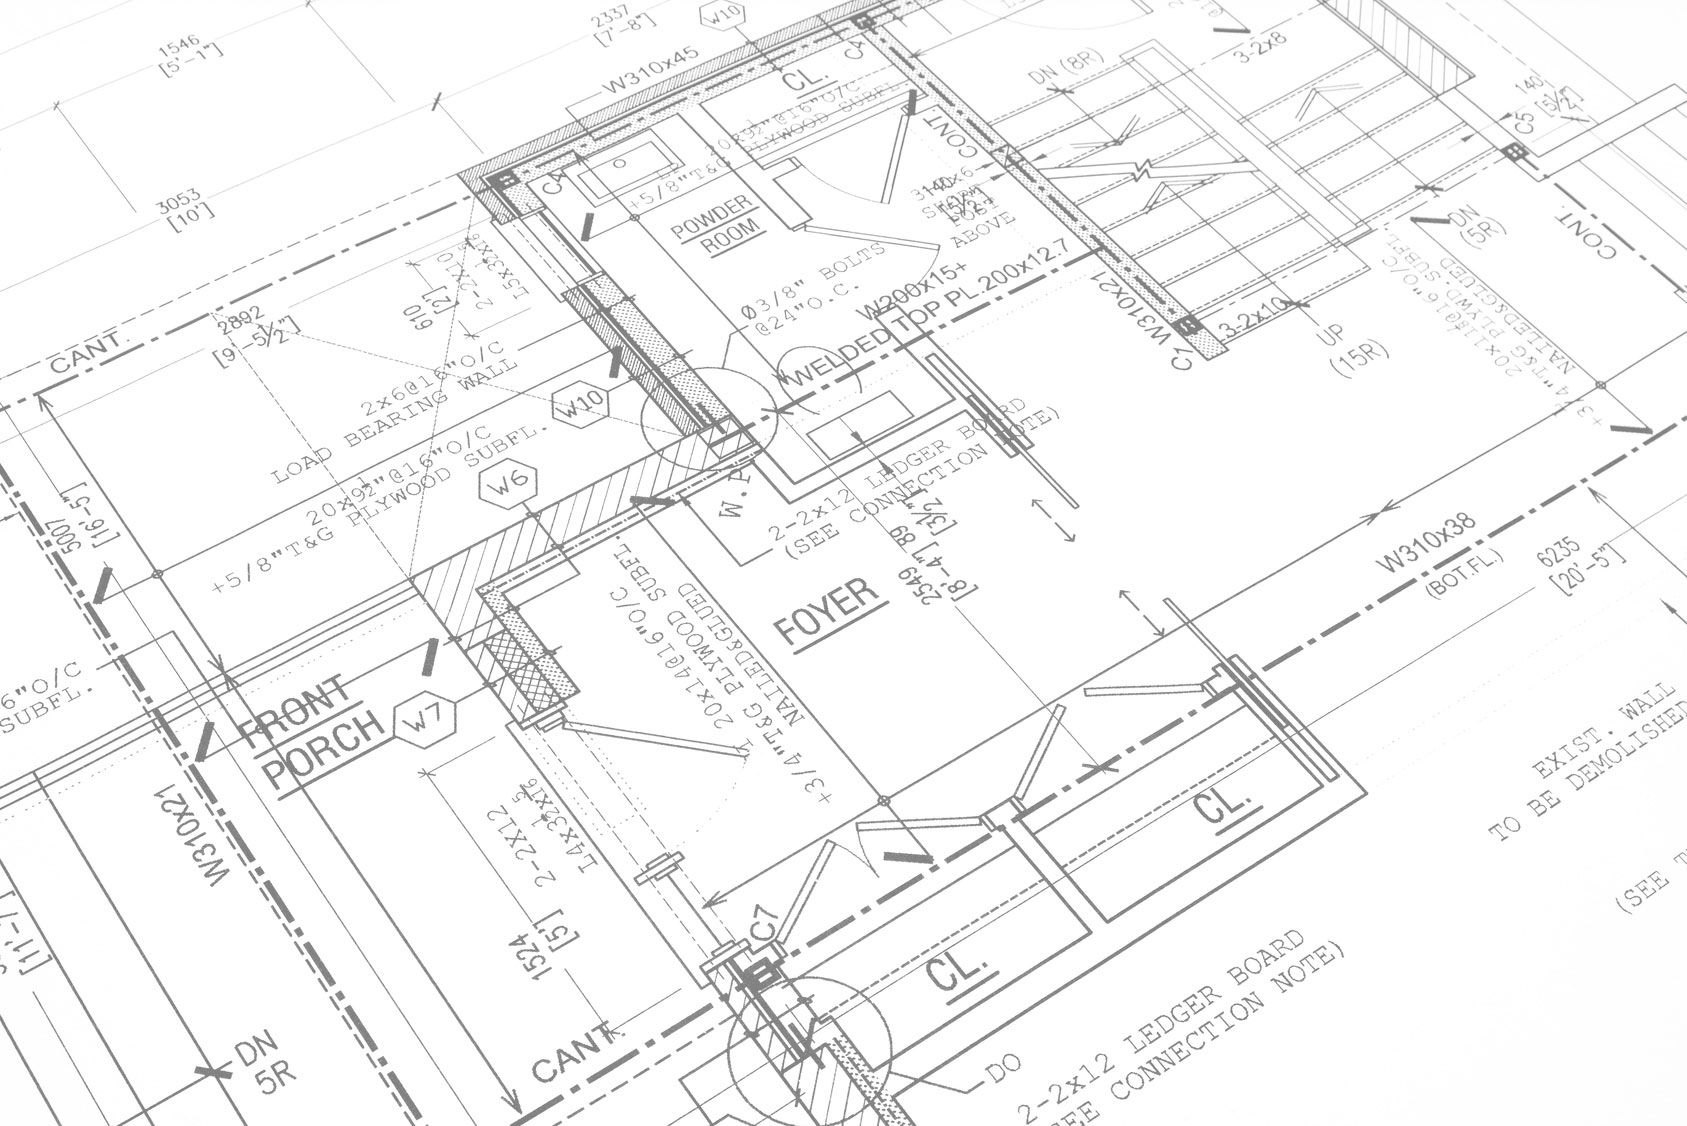 Fire Hydrant System Layout Drawing